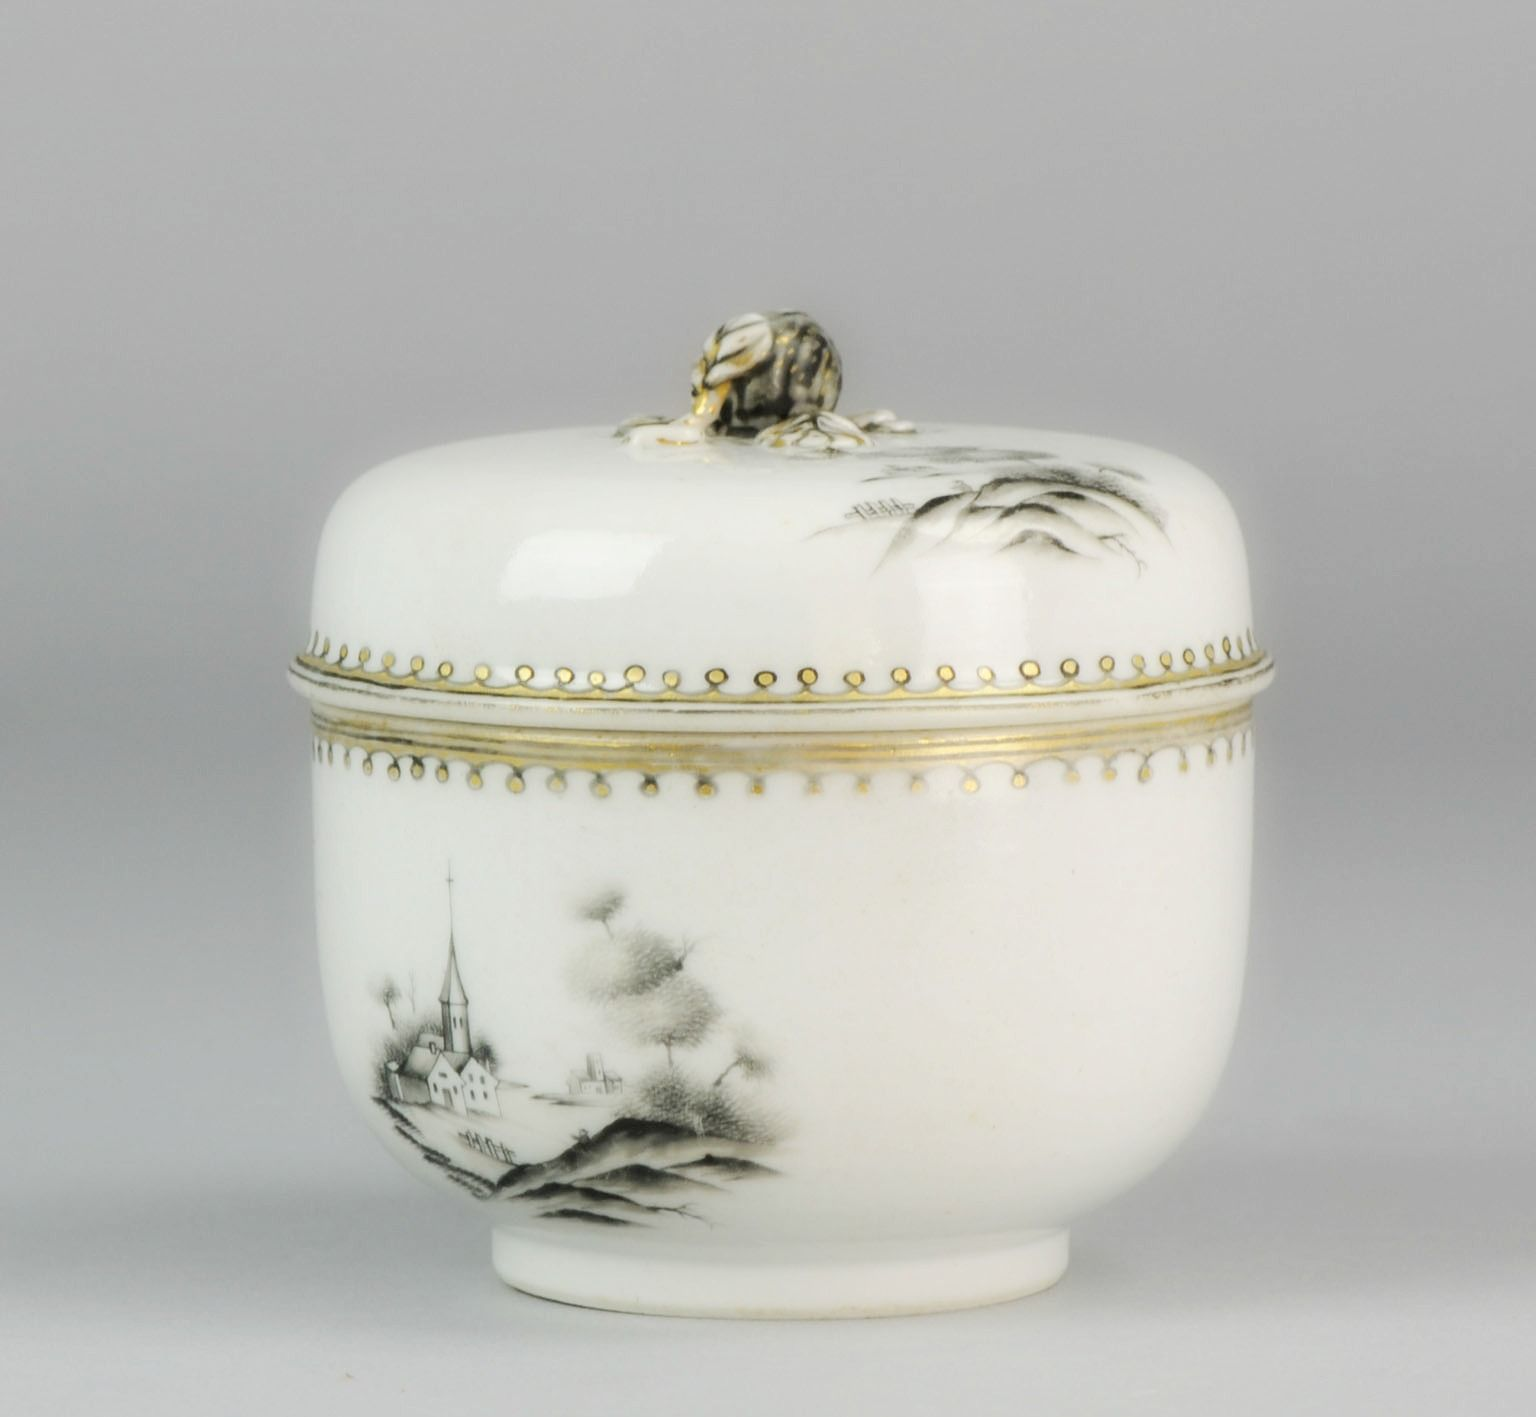 One of our latest finds. A rare and early Encre de Chine jar. Ca 1740. With a landscape scene of a church. Rare to find these type of lidded jars. For our followers only 900 euro. Free shipping. Will post closeups tomorrow.#antique #antiqueauction #antiquecollection #antiqueing #forsale #antiques #jesuit #mythological #blackandwhite #encredechine #Chineseart #qingdynasty #chineseporcelain #ChinesePottery #Oriental #sugarjar #teacaddies #teastuff #onetofollow #selling #chinaaddict #ch..